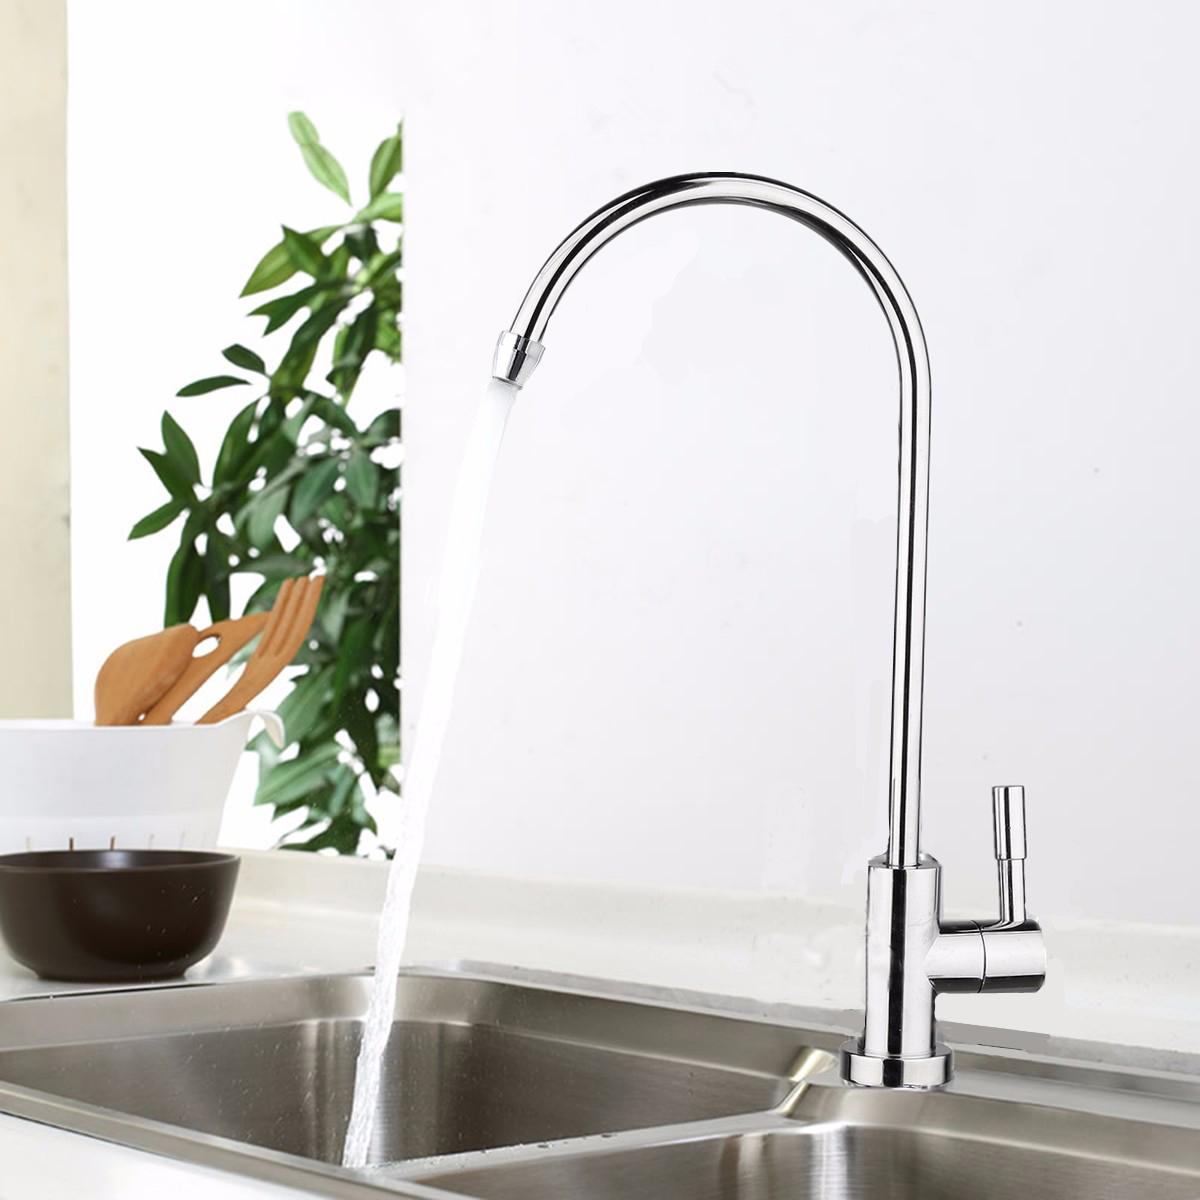 1/4 Inch Connect Hose Water Filter Faucet Chrome Plated Reverse Osmosis Filters Parts Purifier Direct Drinking Tap Kitchen